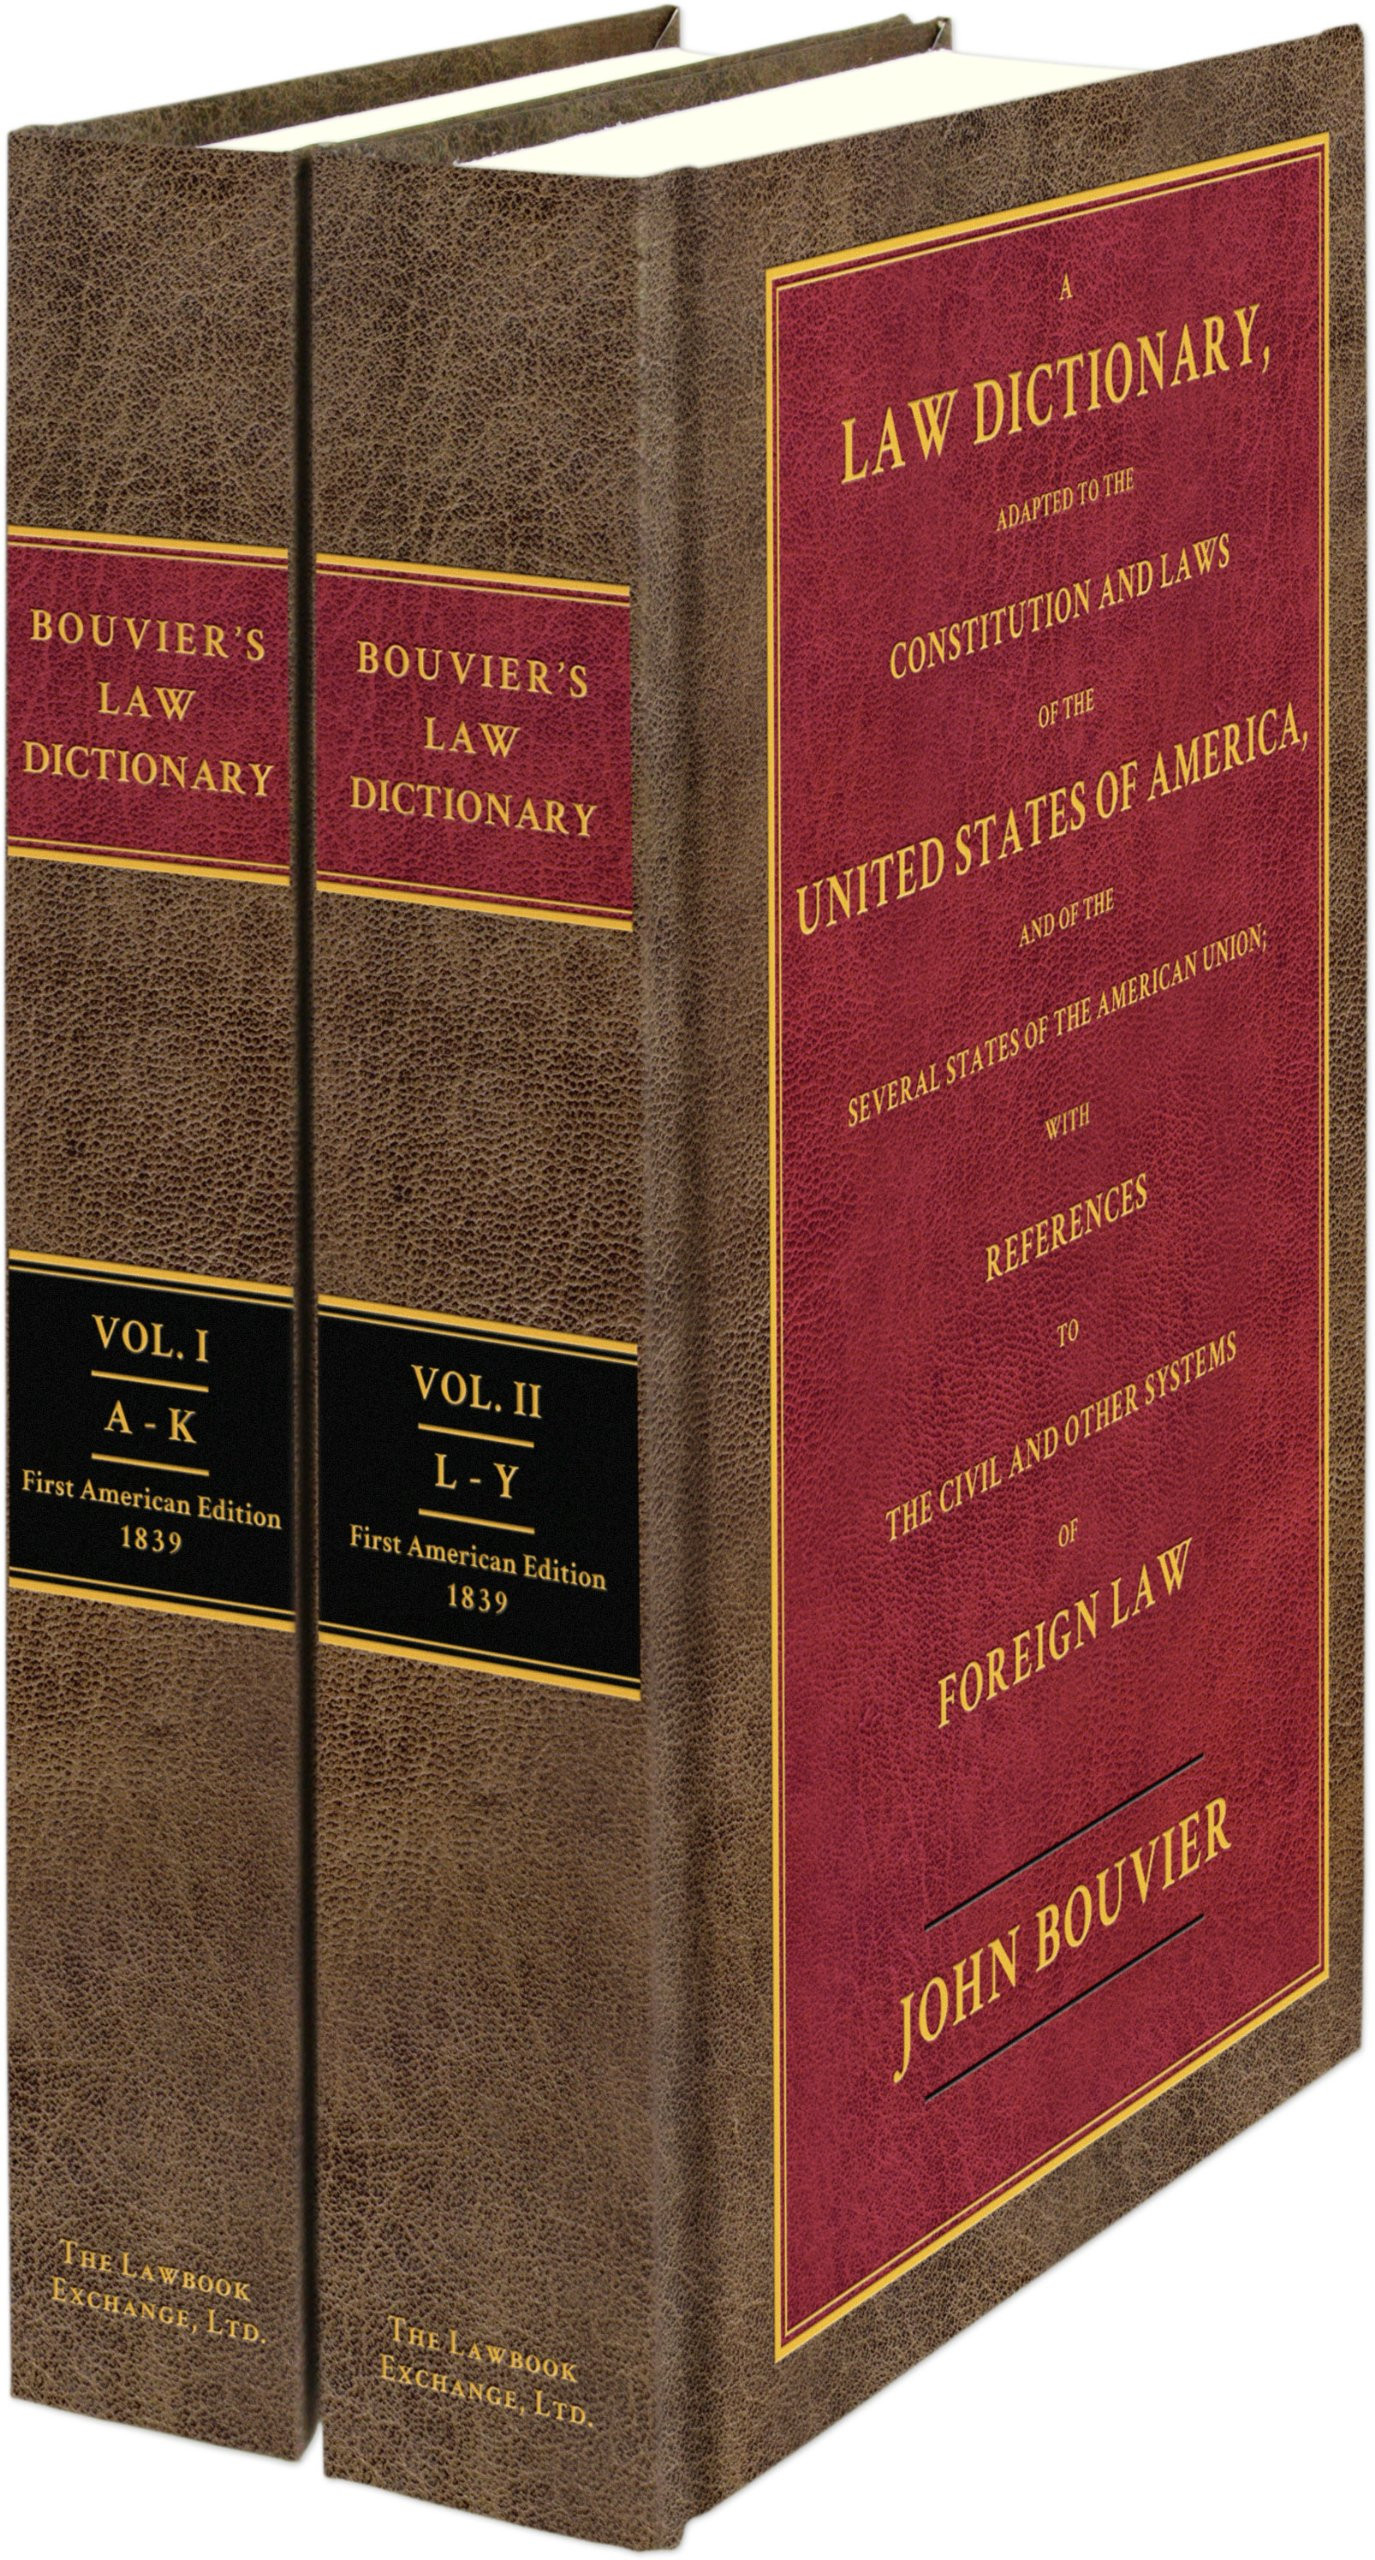 A Law Dictionary: Adapted to the Constitution and Laws of the United States and the Serveral States of the American Union 2 volume set by Lawbook Exchange Ltd